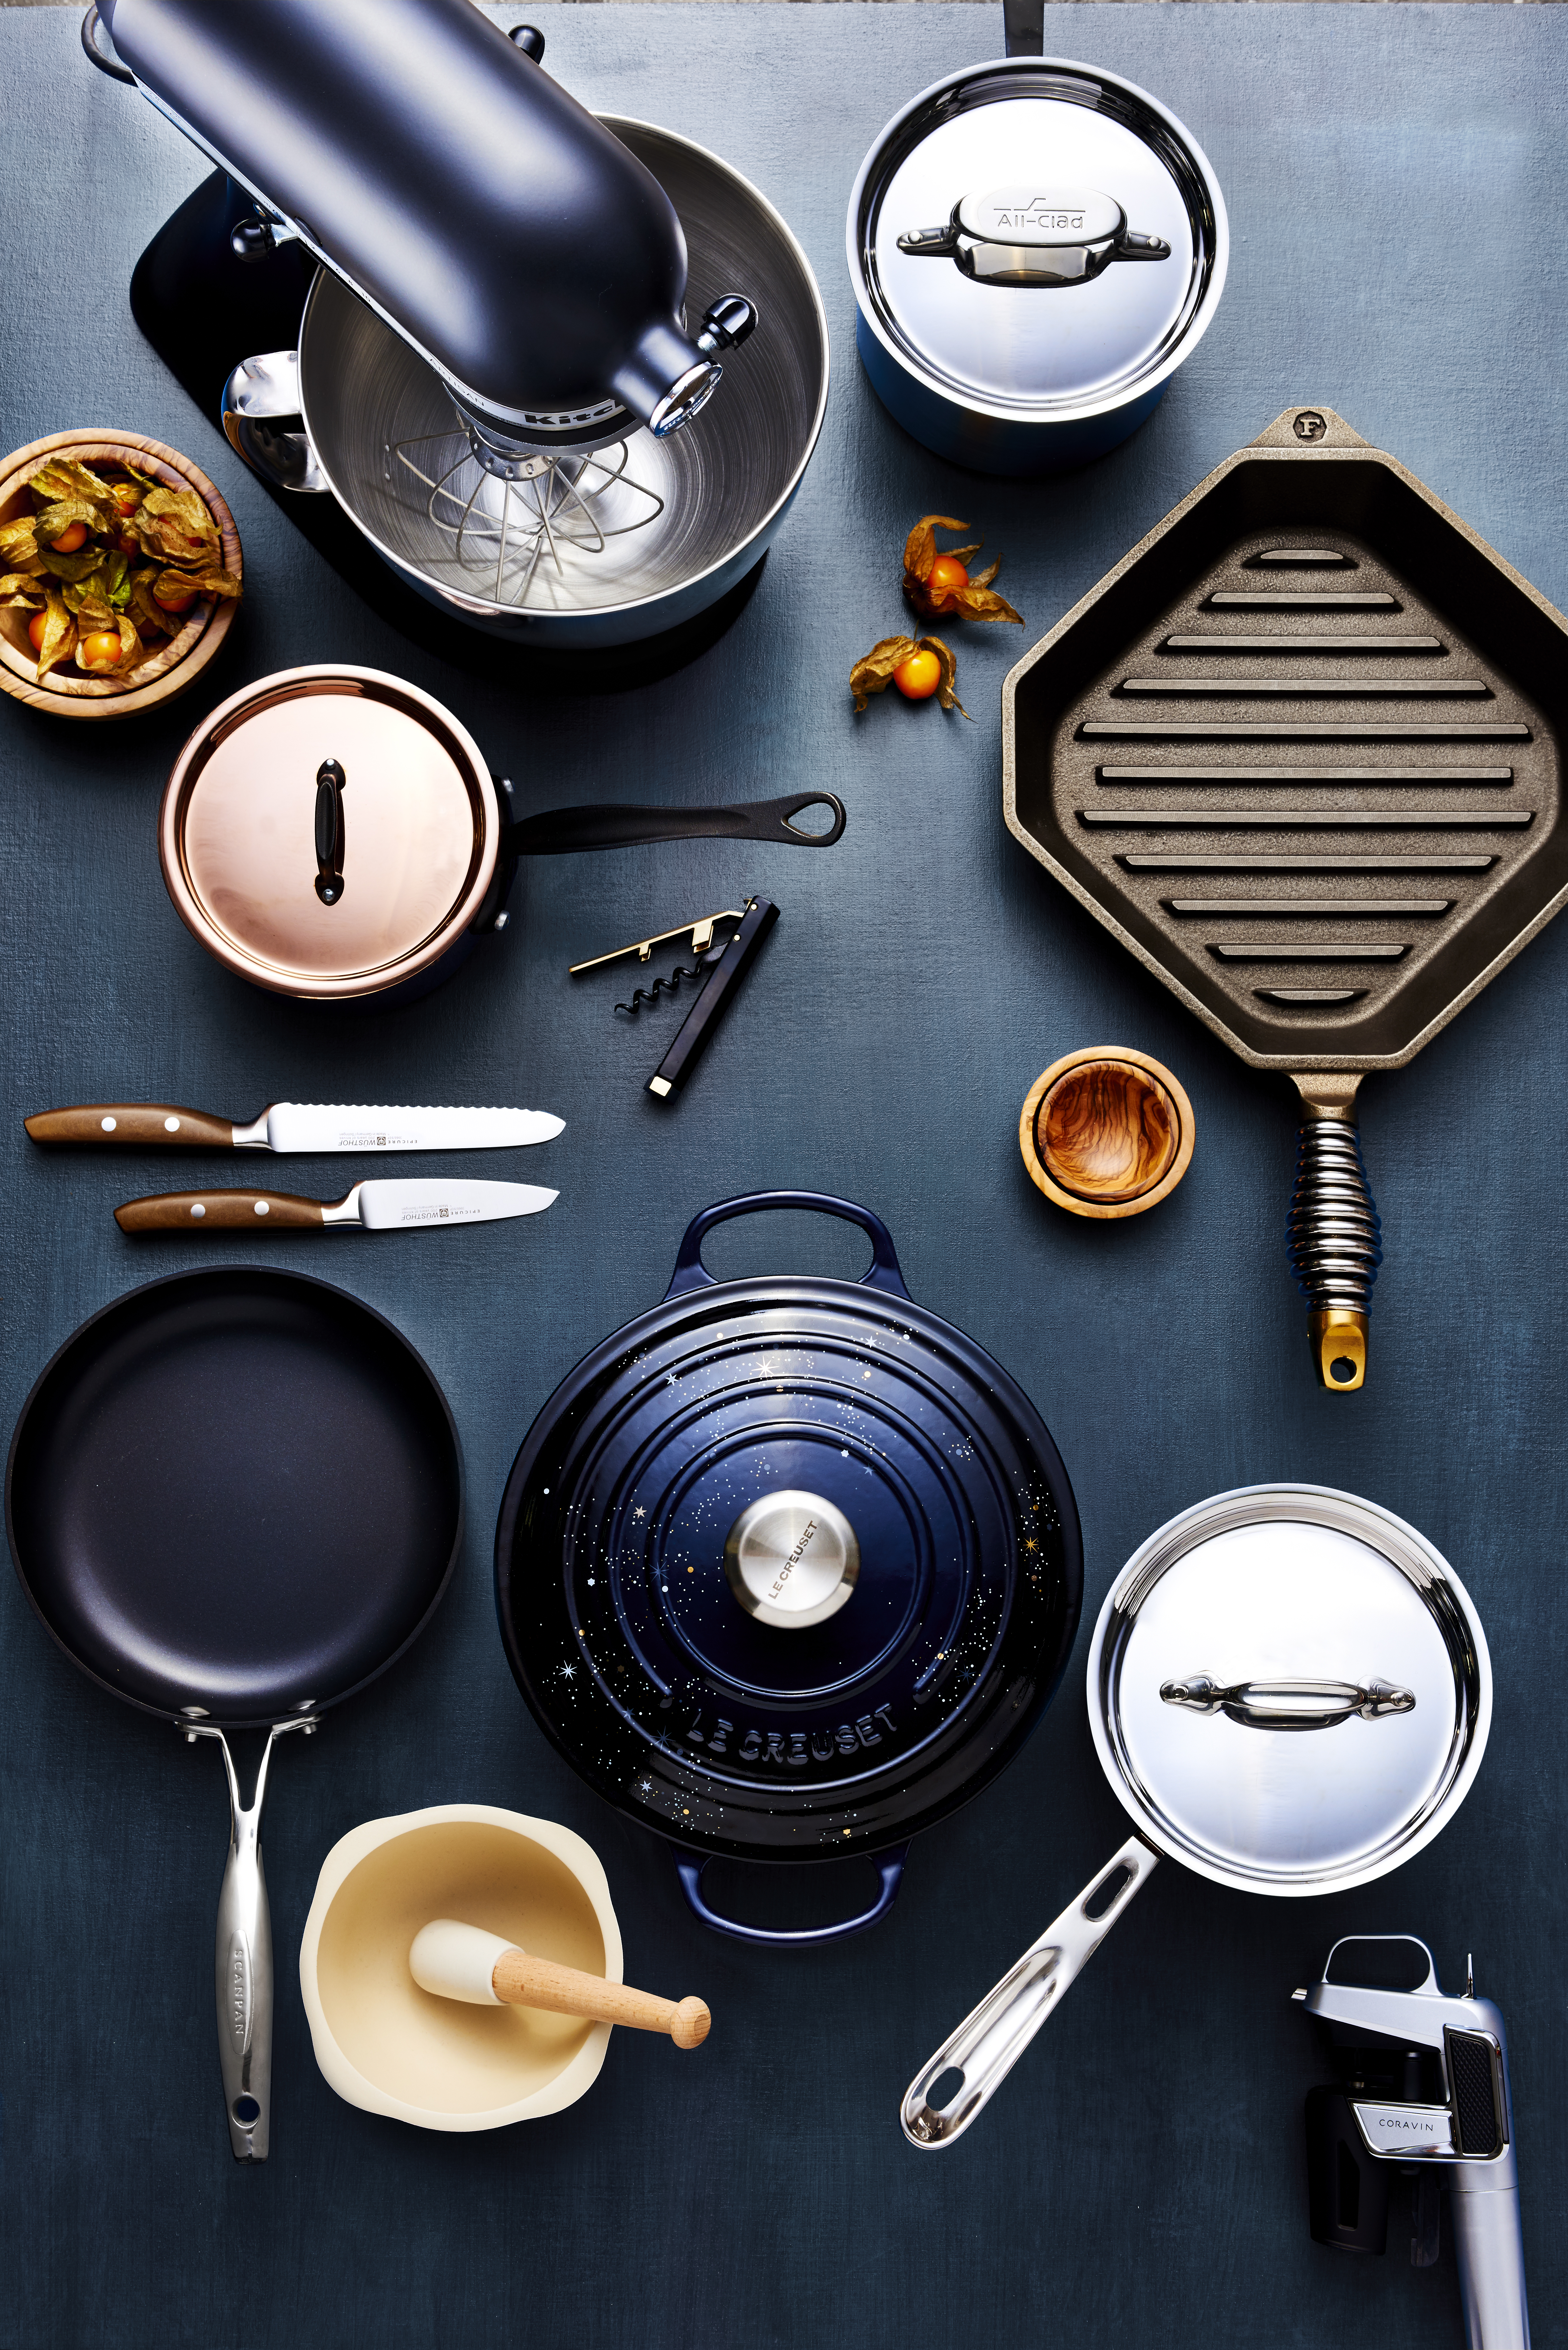 1710_59thSt_Cookware348-MASTER